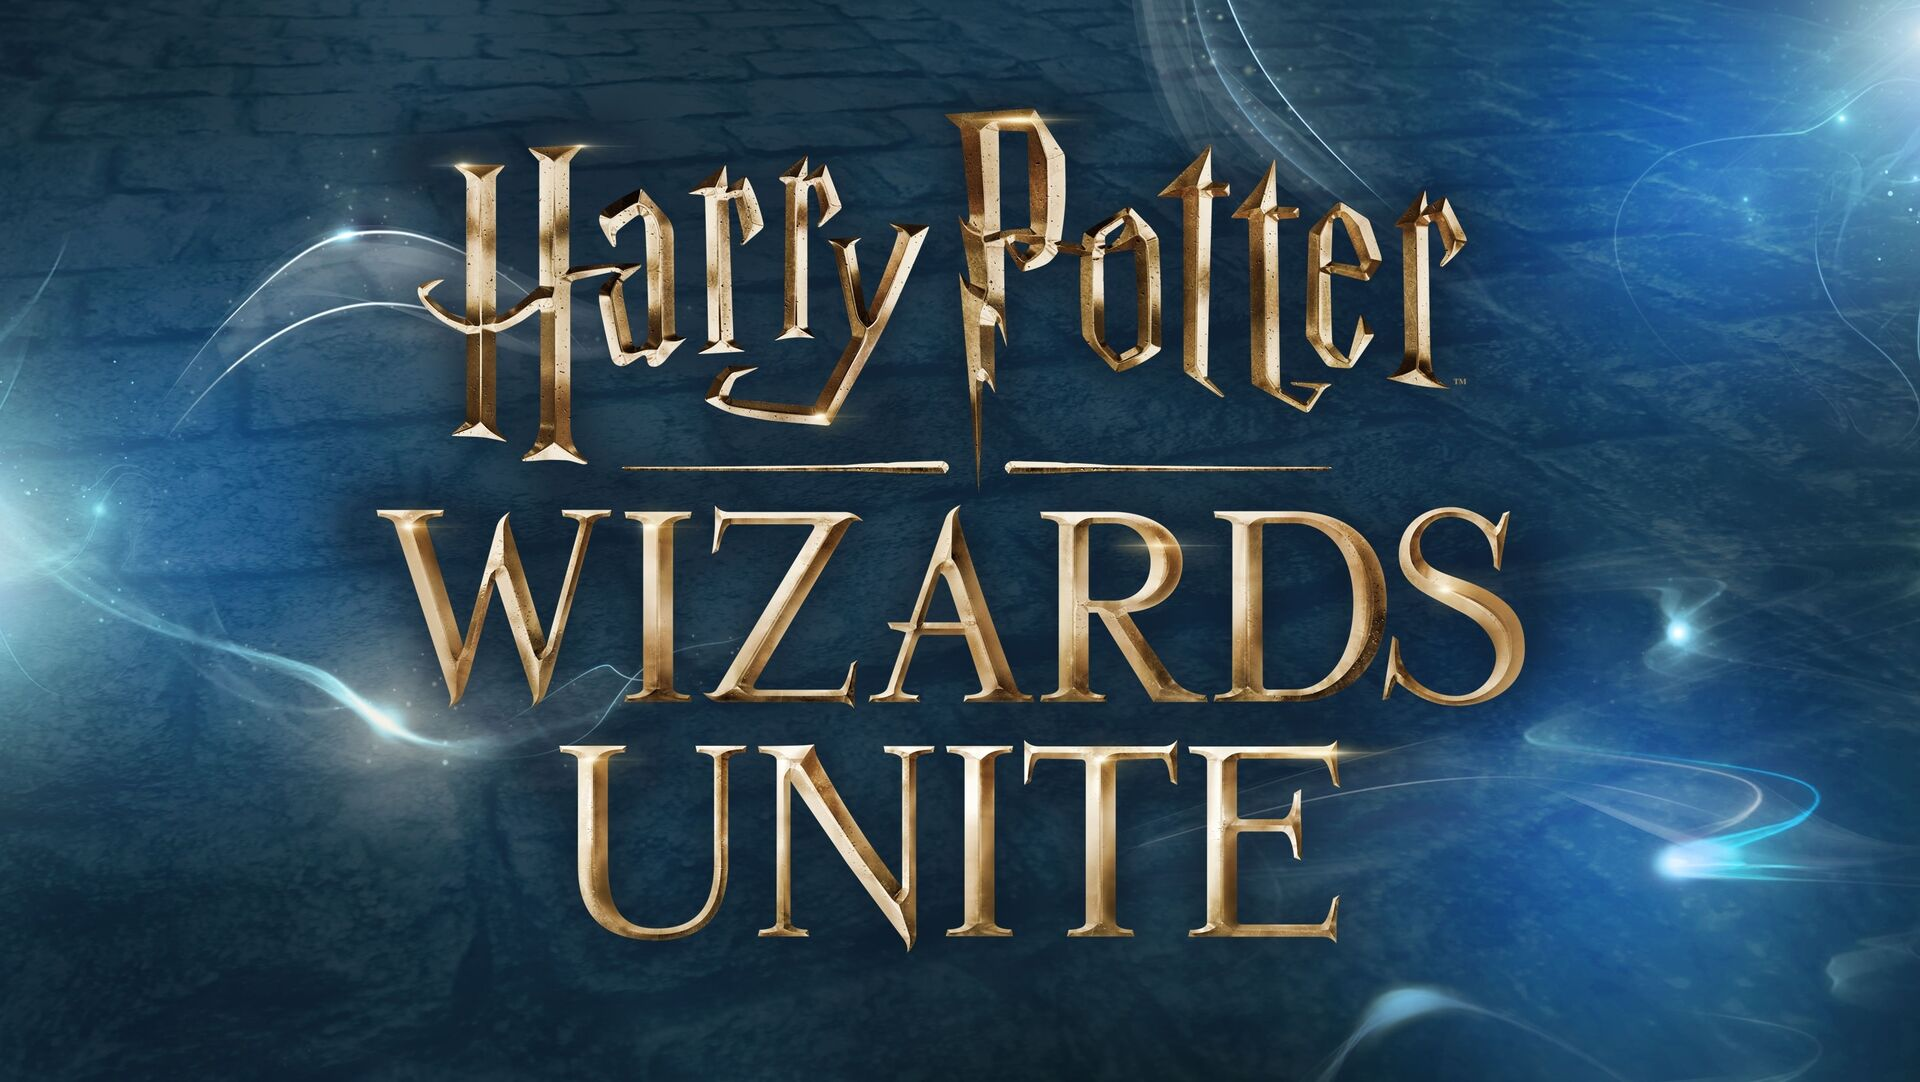 Niantic may push its Pokémon Go-style Harry Potter game into 2019